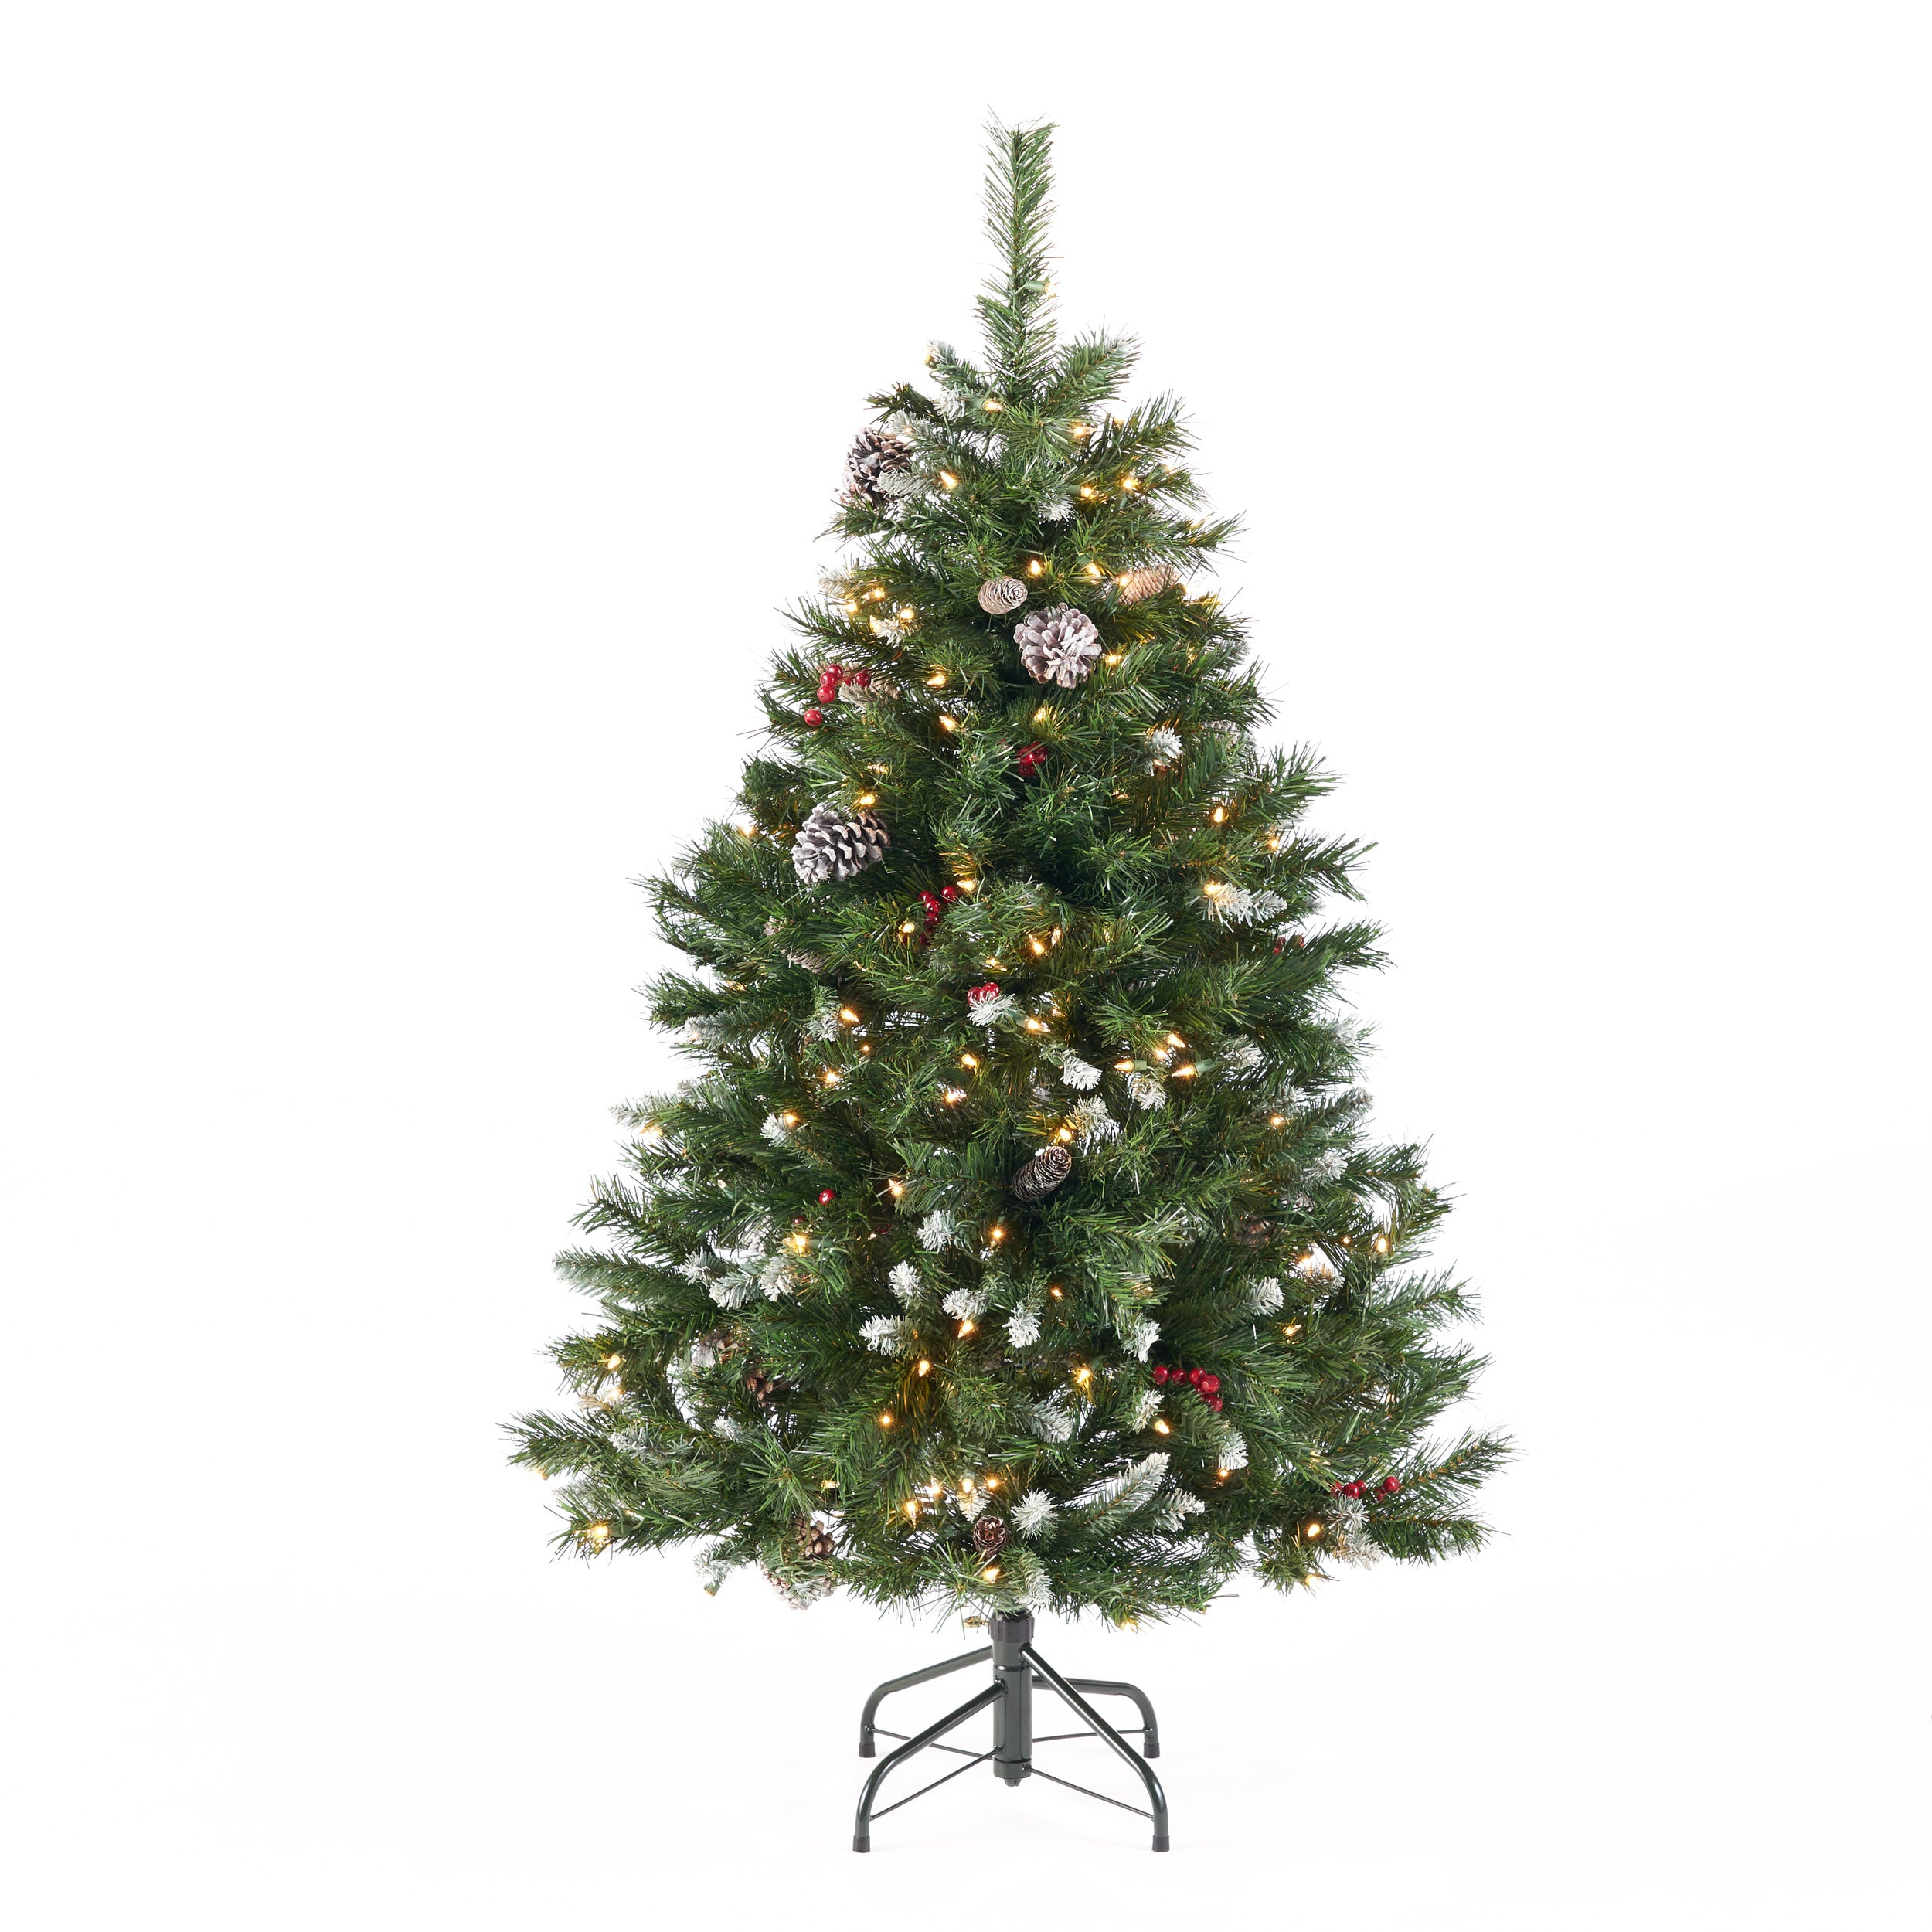 45 foot Mixed Spruce Hinged Artificial Christmas Tree with Frosted Branches Red Berries and Frosted Pinecones Multicolor Lights